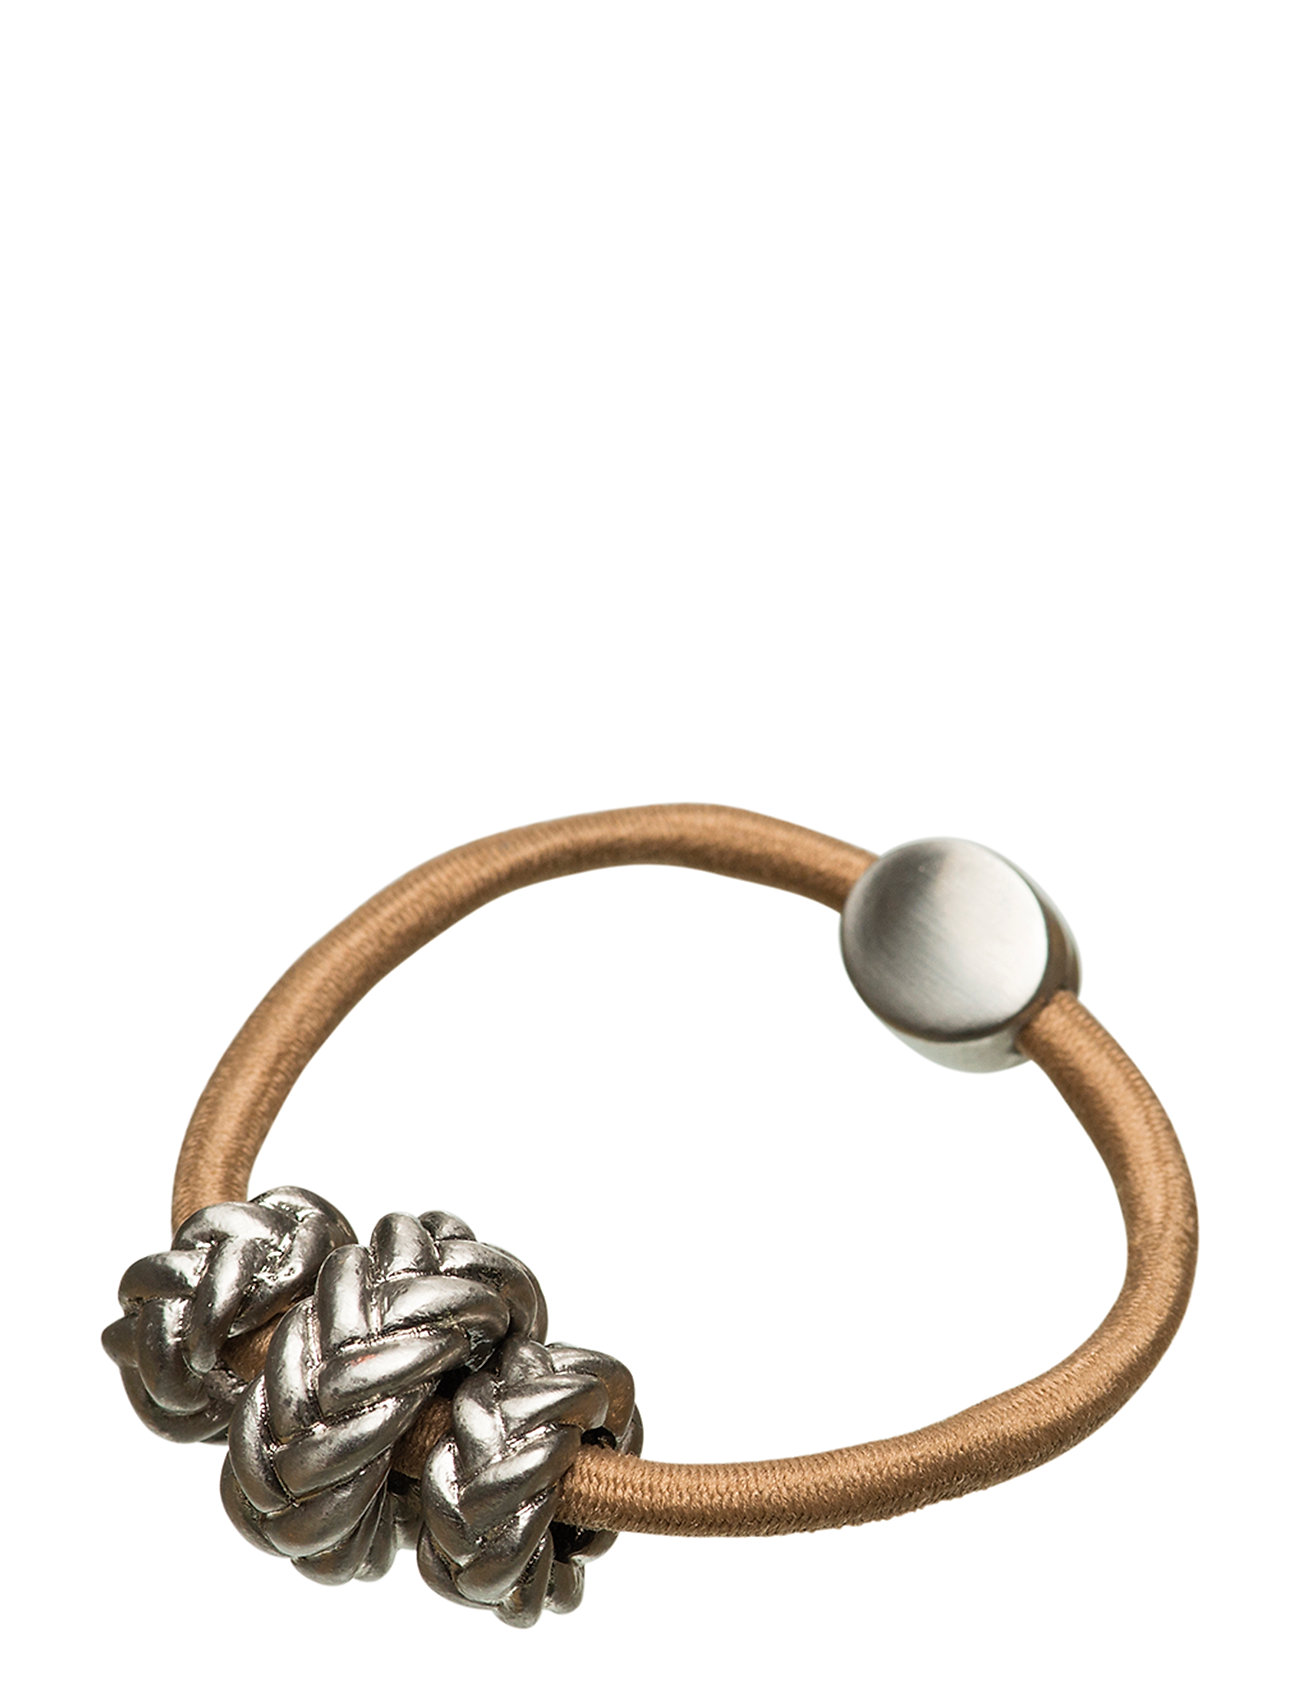 Image of Hairband Classic Braid Hårtilbehør Beige CORINNE (3189853171)